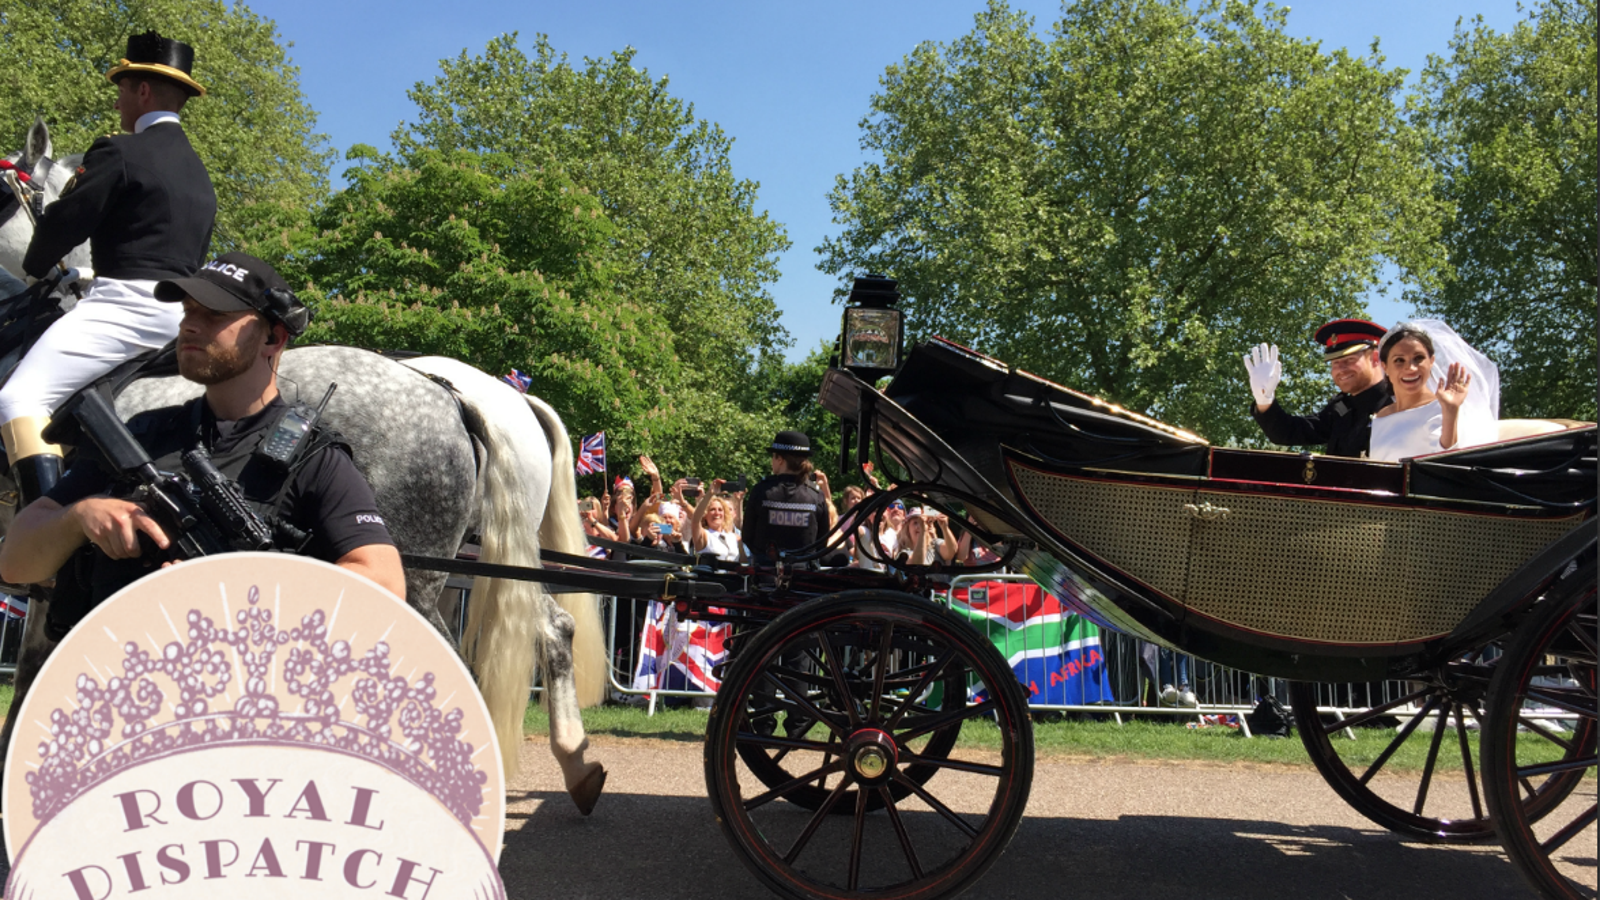 I Camped Out Overnight for This Photo of Harry and Meghan and I Regret Nothing